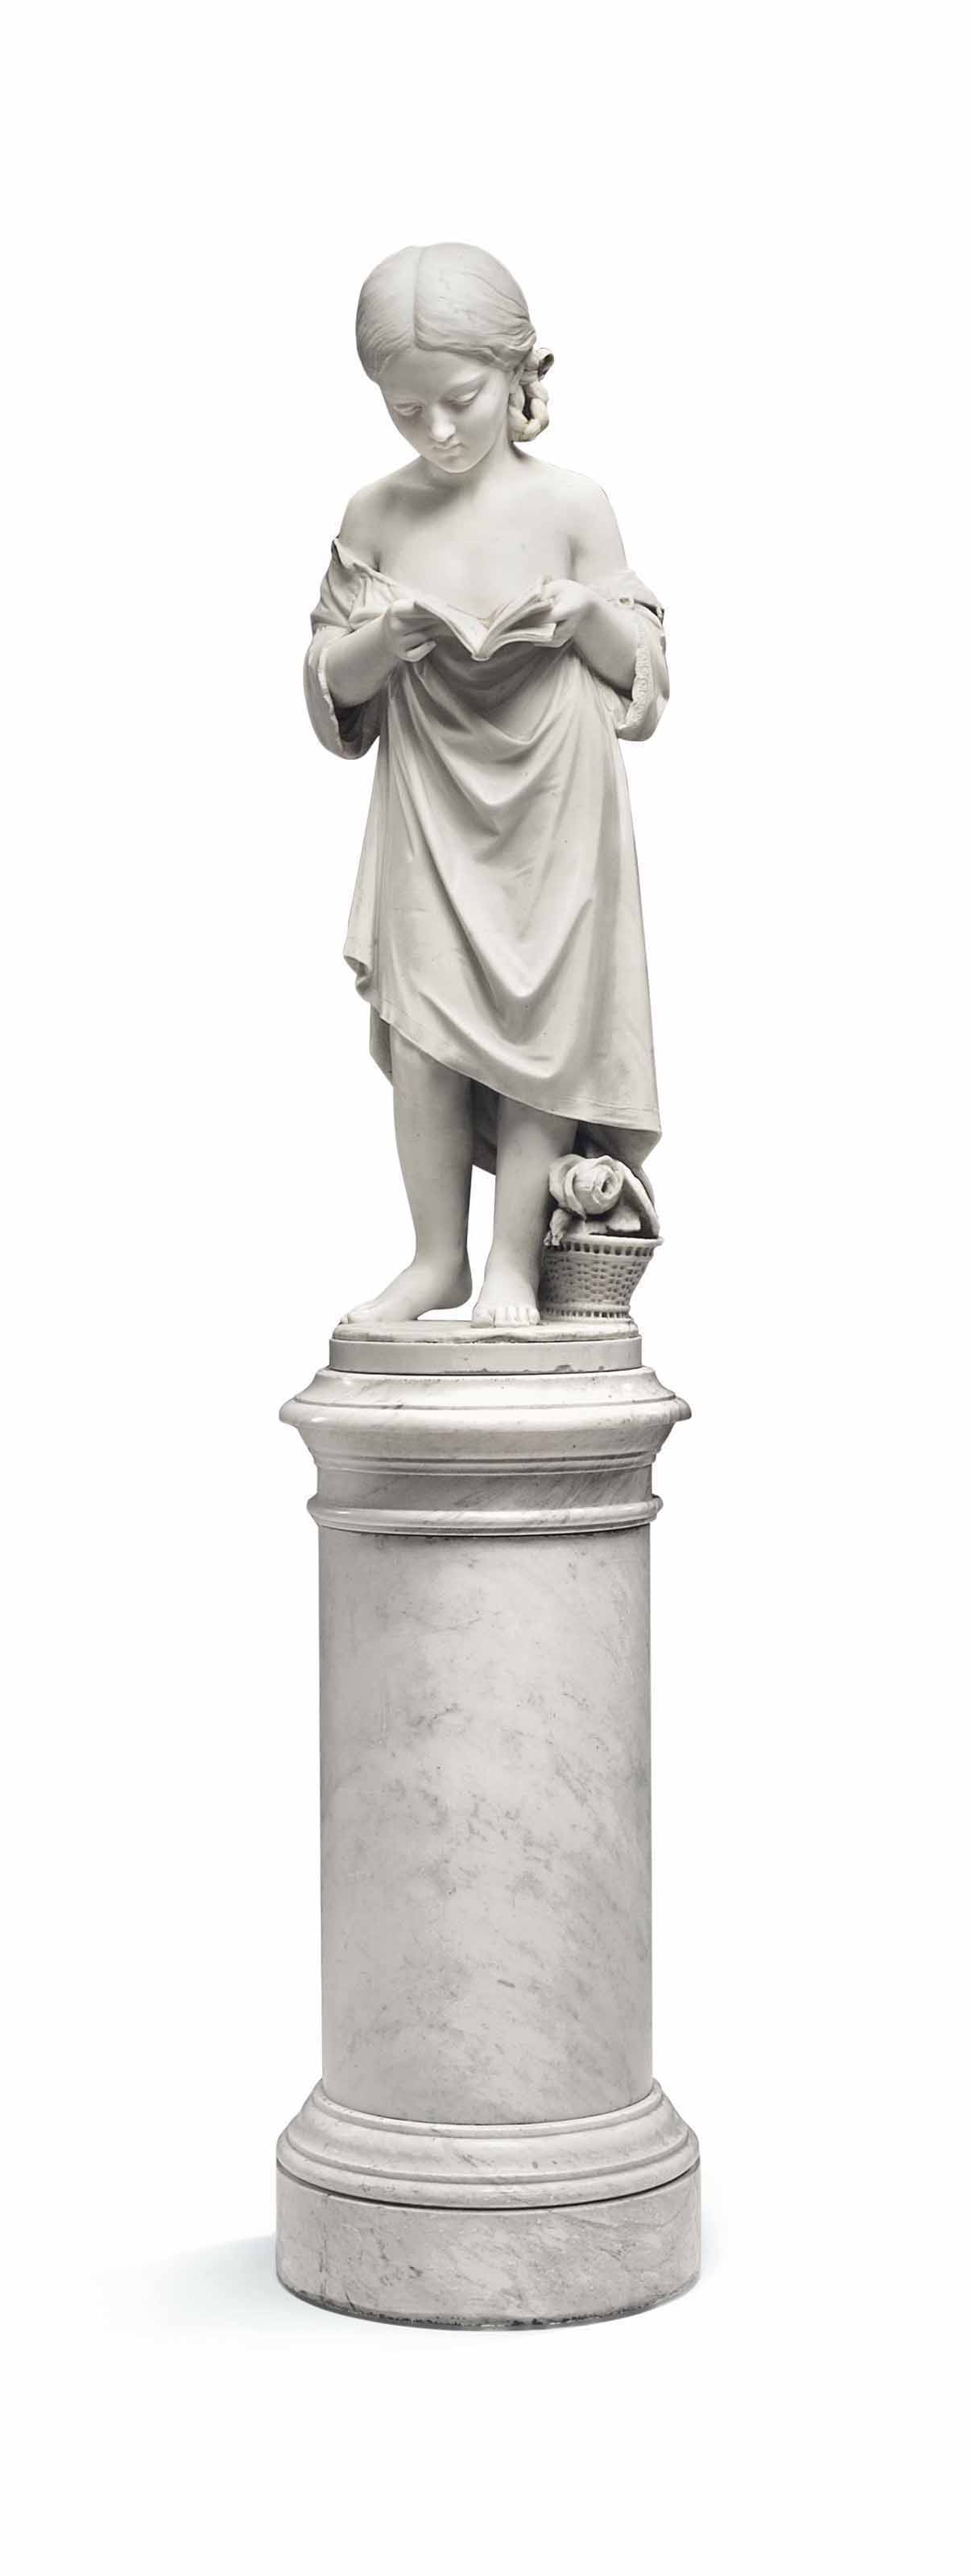 AN ITALIAN WHITE MARBLE OF A FIGURE TITLED 'BAMBINA CHE LEGGE', ON PEDESTAL